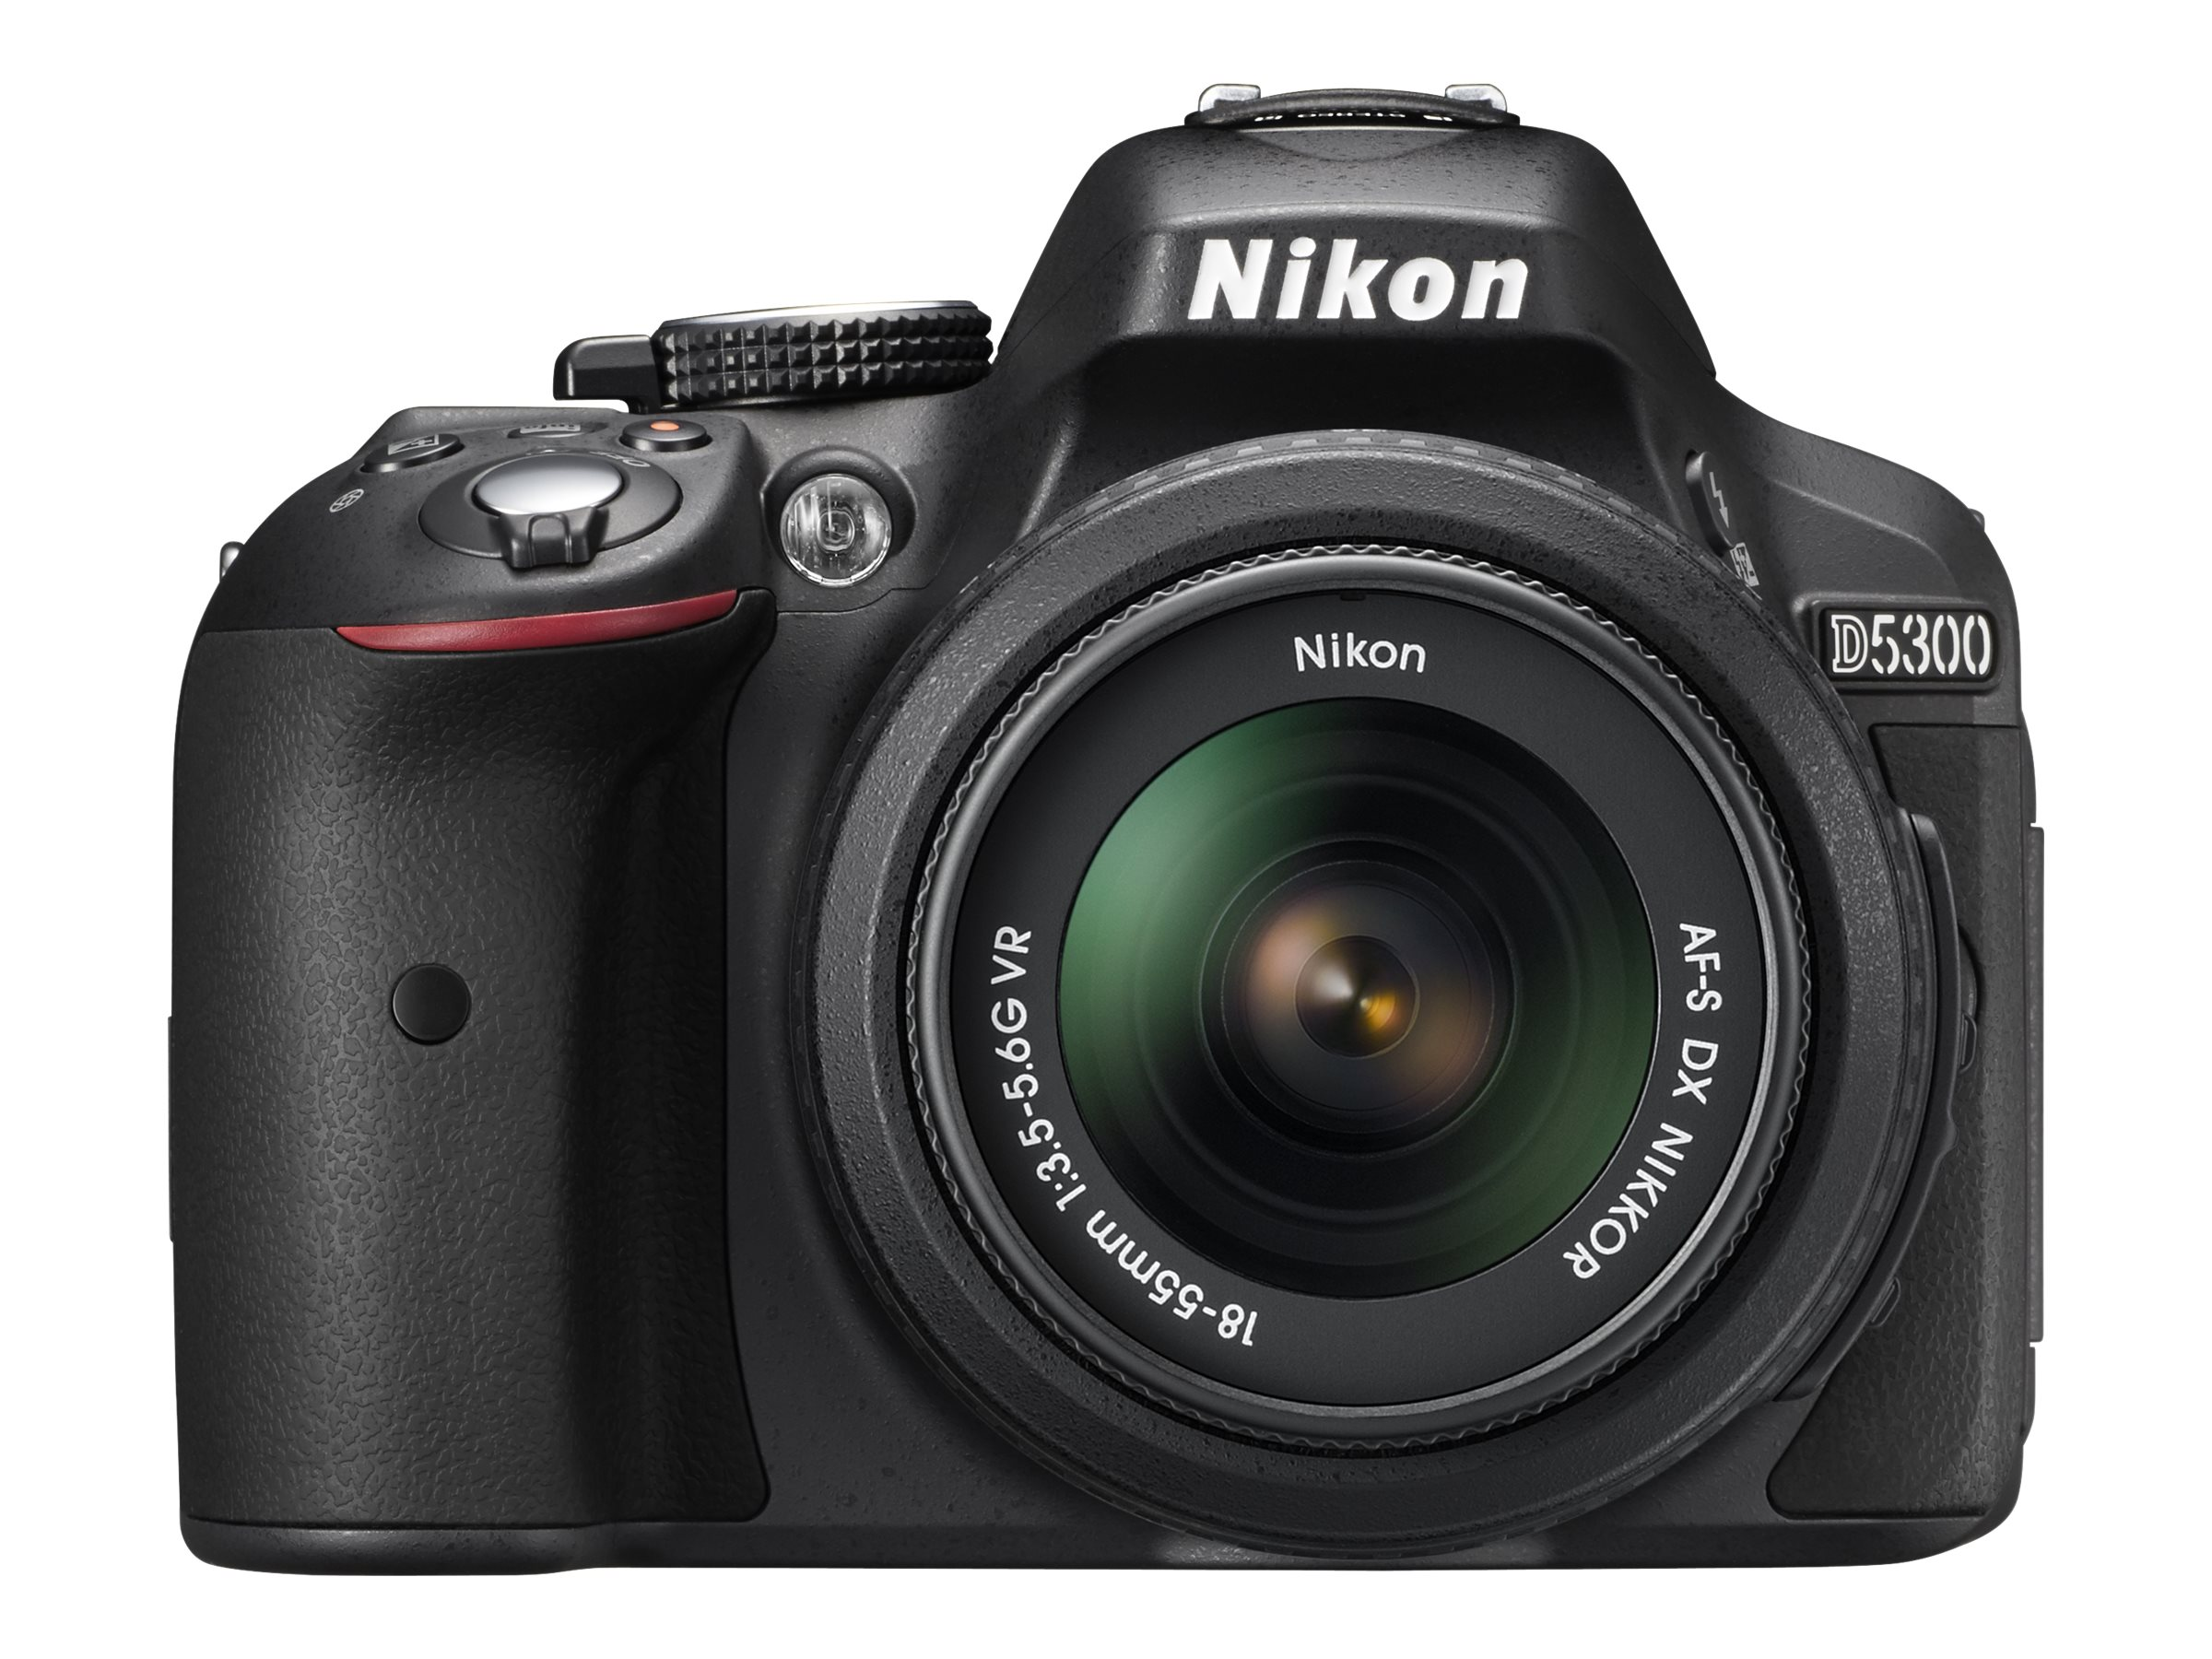 Nikon D5300 DX-Format Digital SLR Body only - Black, 1519